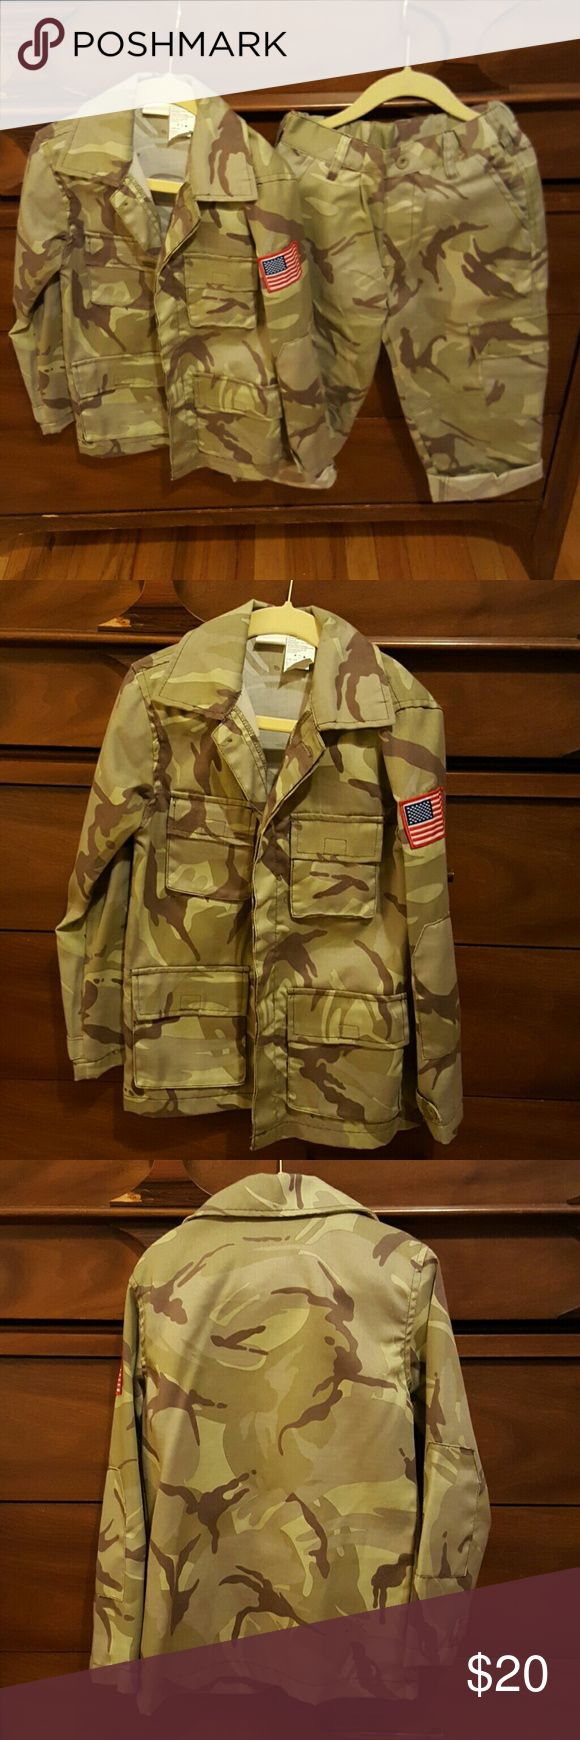 Army outfit, kids size 4-6 Very cute army outfit, worn a few times for pictures.  Set comes as two pieces.  Top is long sleeve button down shirt with the American flag on the leg arm.  Pants can be rolled or unrolled, my kids are short.  No visible wear on them.  Tag says kids 4-6. Pony Express Costumes Halloween